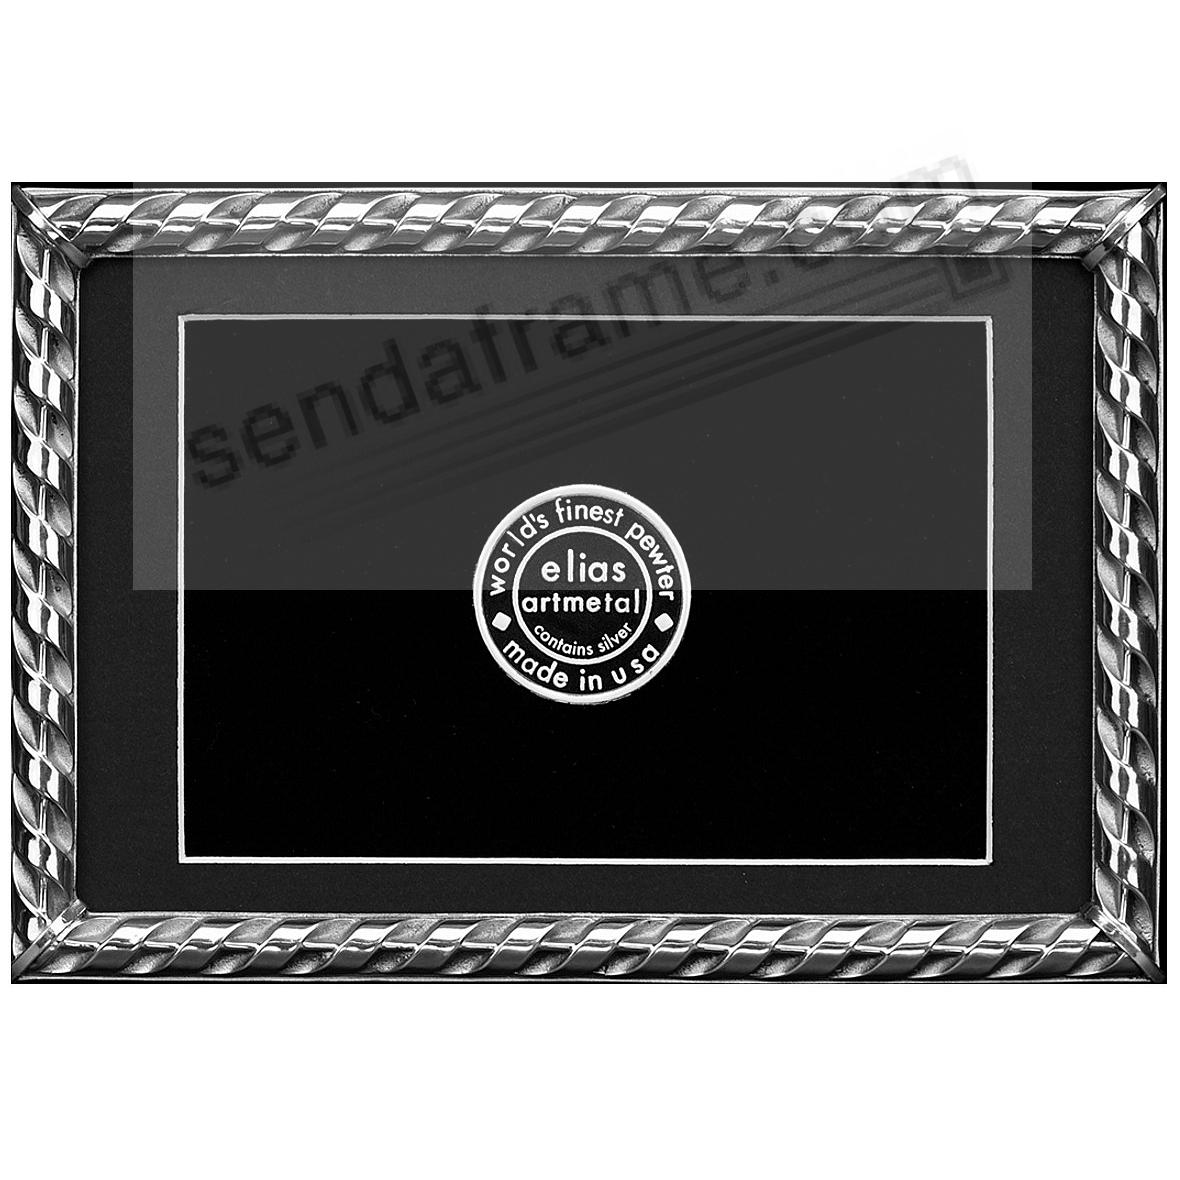 RIBBON Fine Silvered Pewter frame 4x6/3½x5½ by Elias Artmetal®